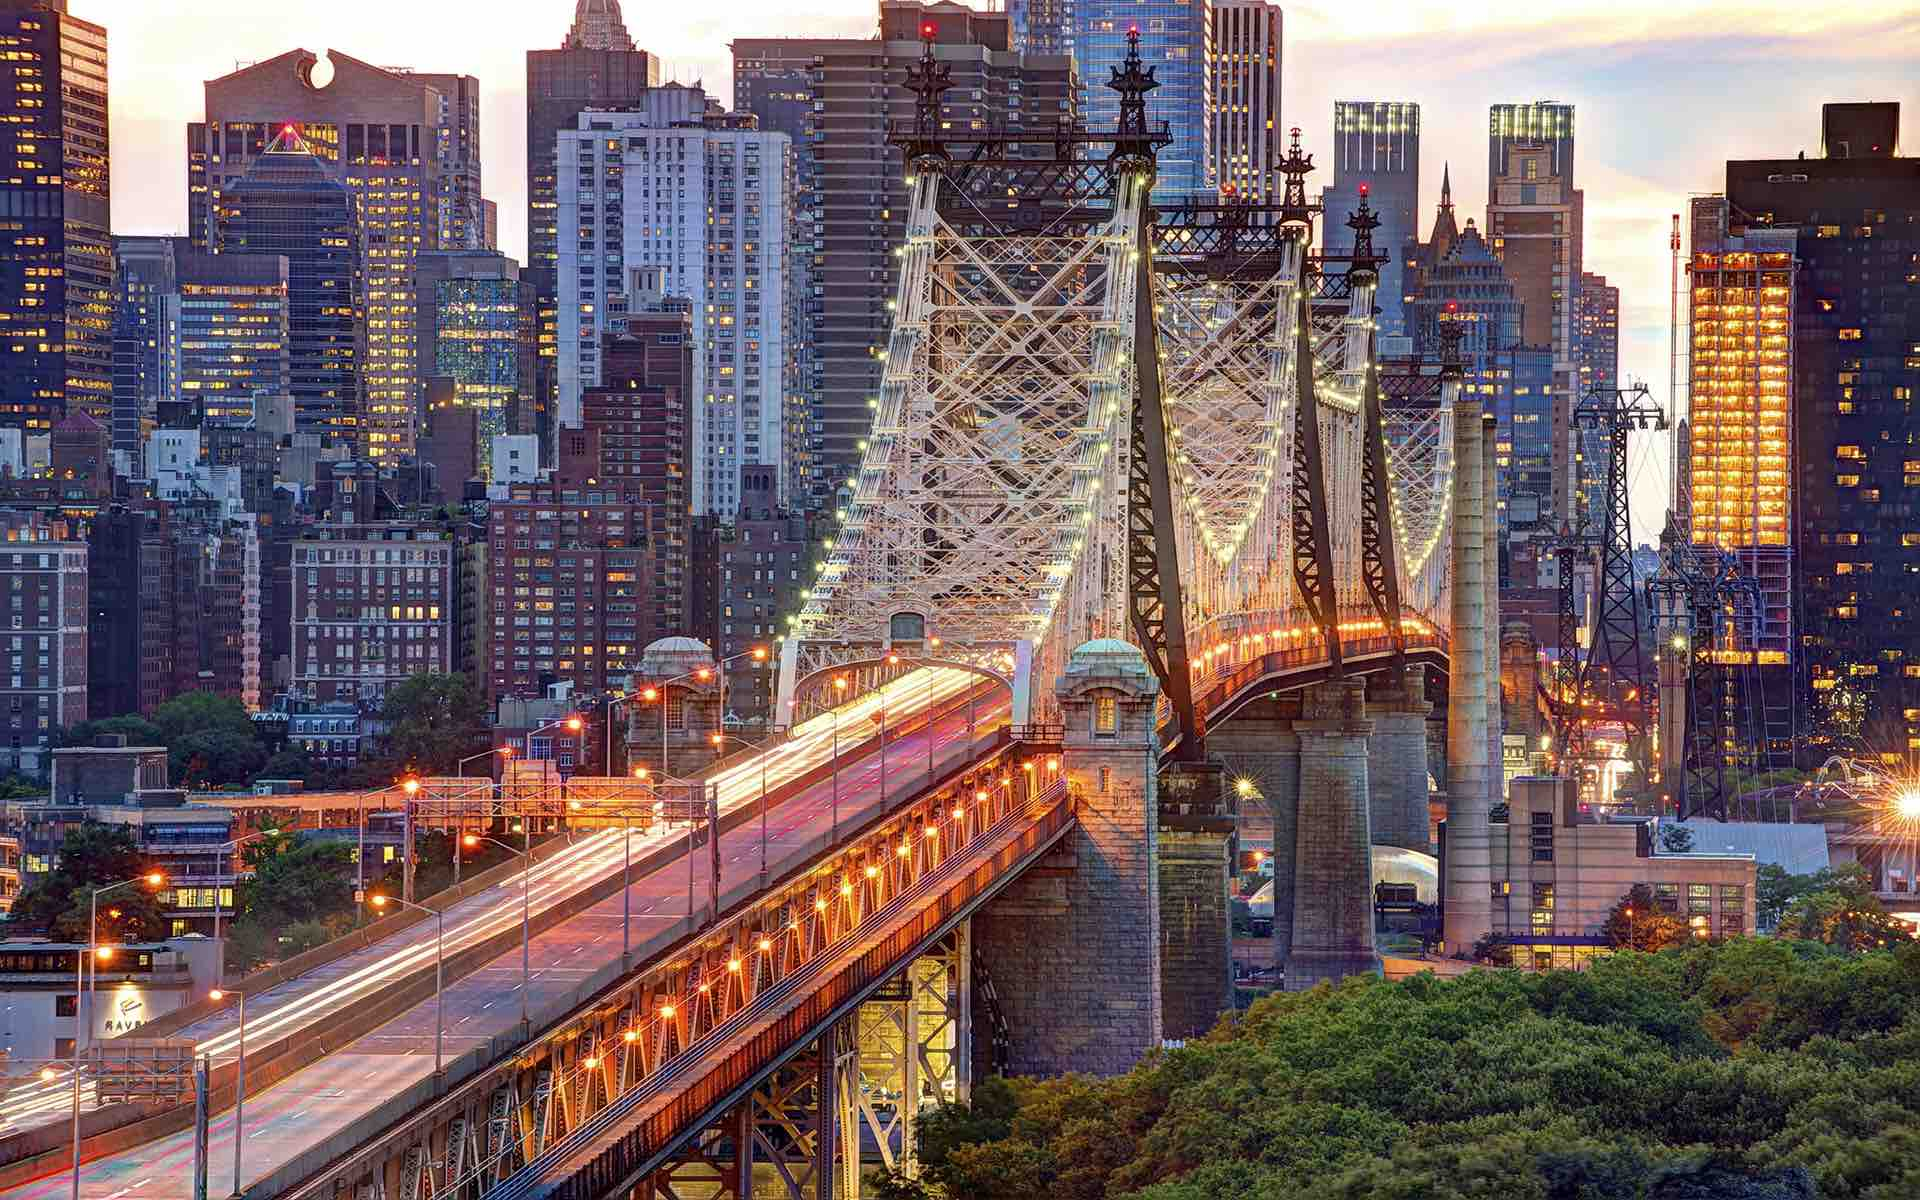 You can enjoy great views from  from the 7 train  when you reach Queensboro Bridge (Queensboro Plaza station). From  N or W trains (from Astoria) the view is even better (above).